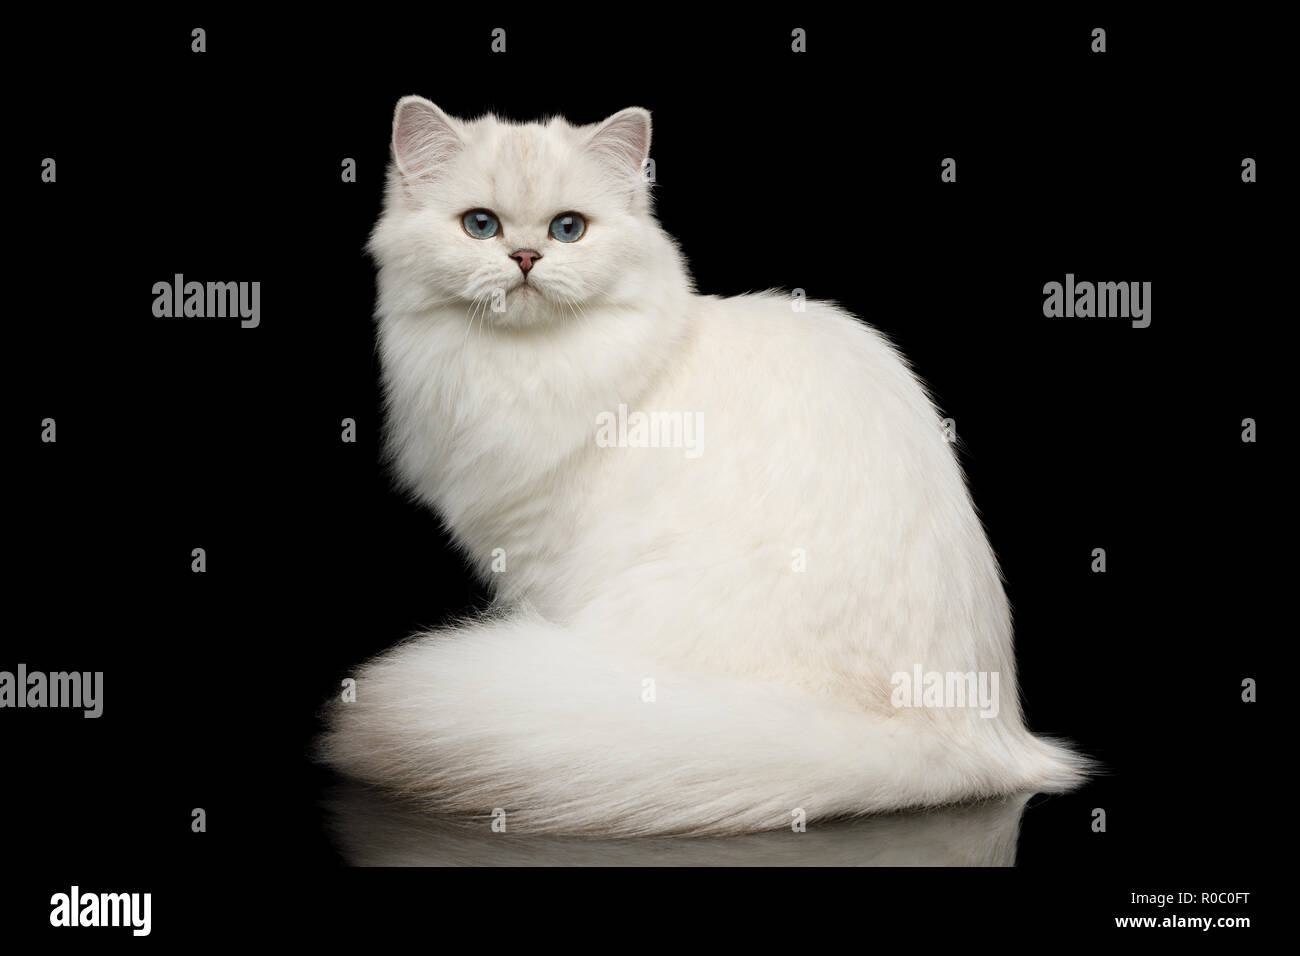 Adorable British breed Cat White color with Blue eyes, Sitting and looking in Camera on Isolated Black Background, front view - Stock Image